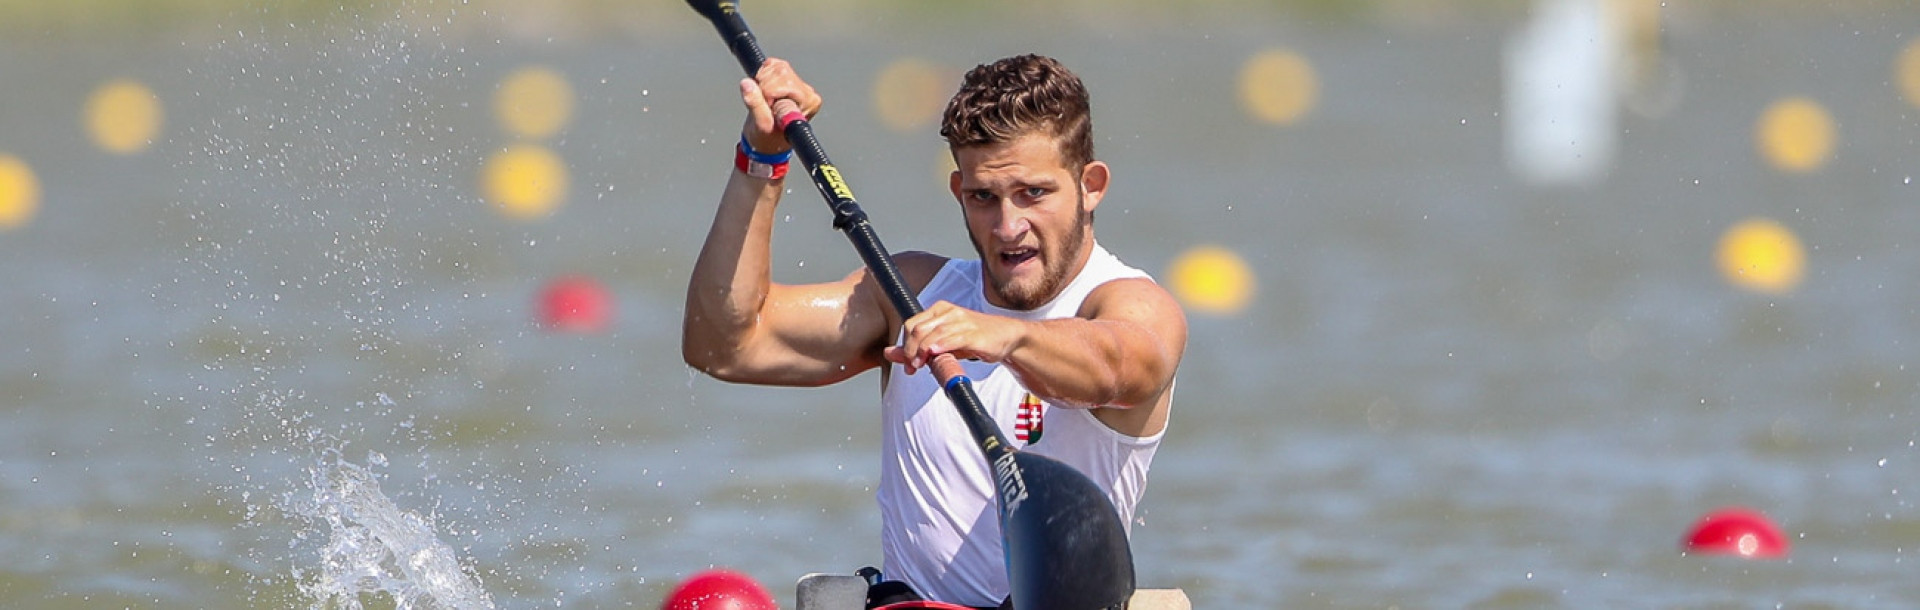 Hungary's Kiss set for home return at ICF Paracanoe World Cup